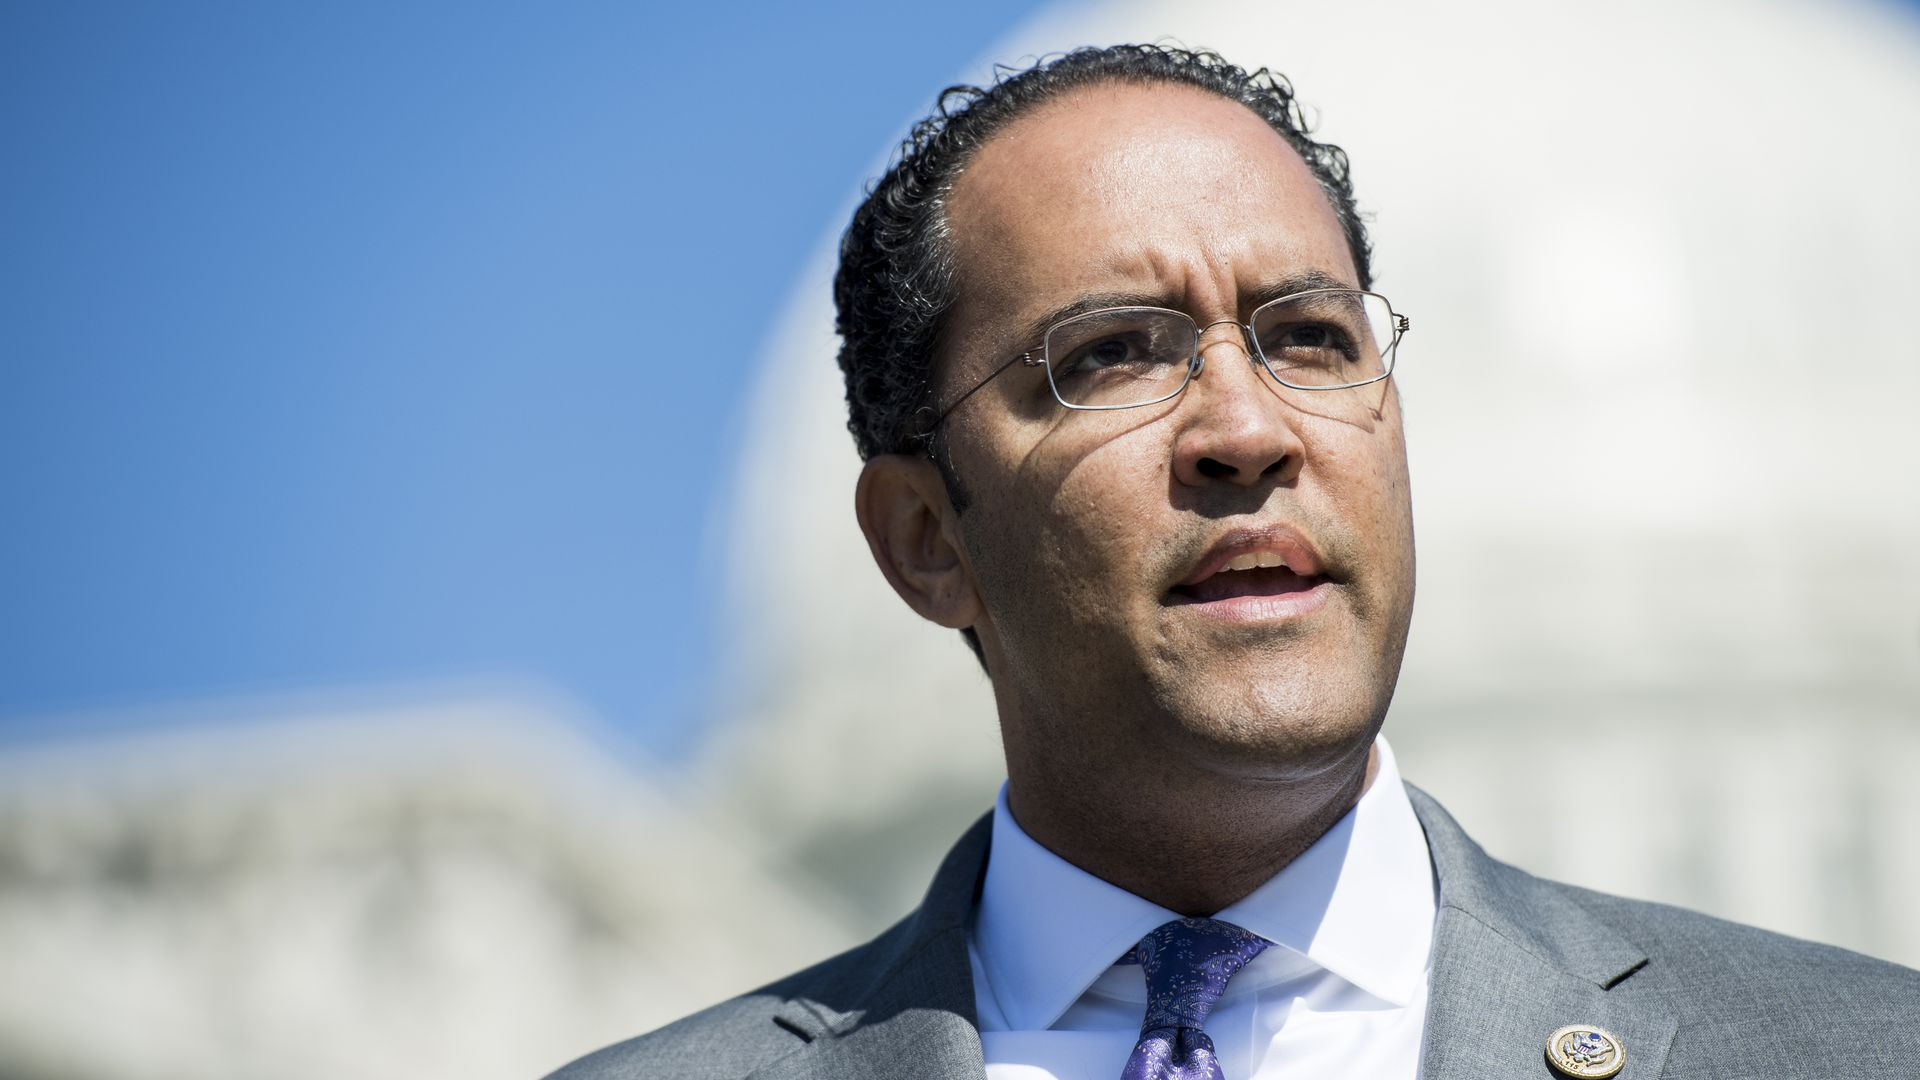 Rep. Will Hurd speaks in front of the Capitol